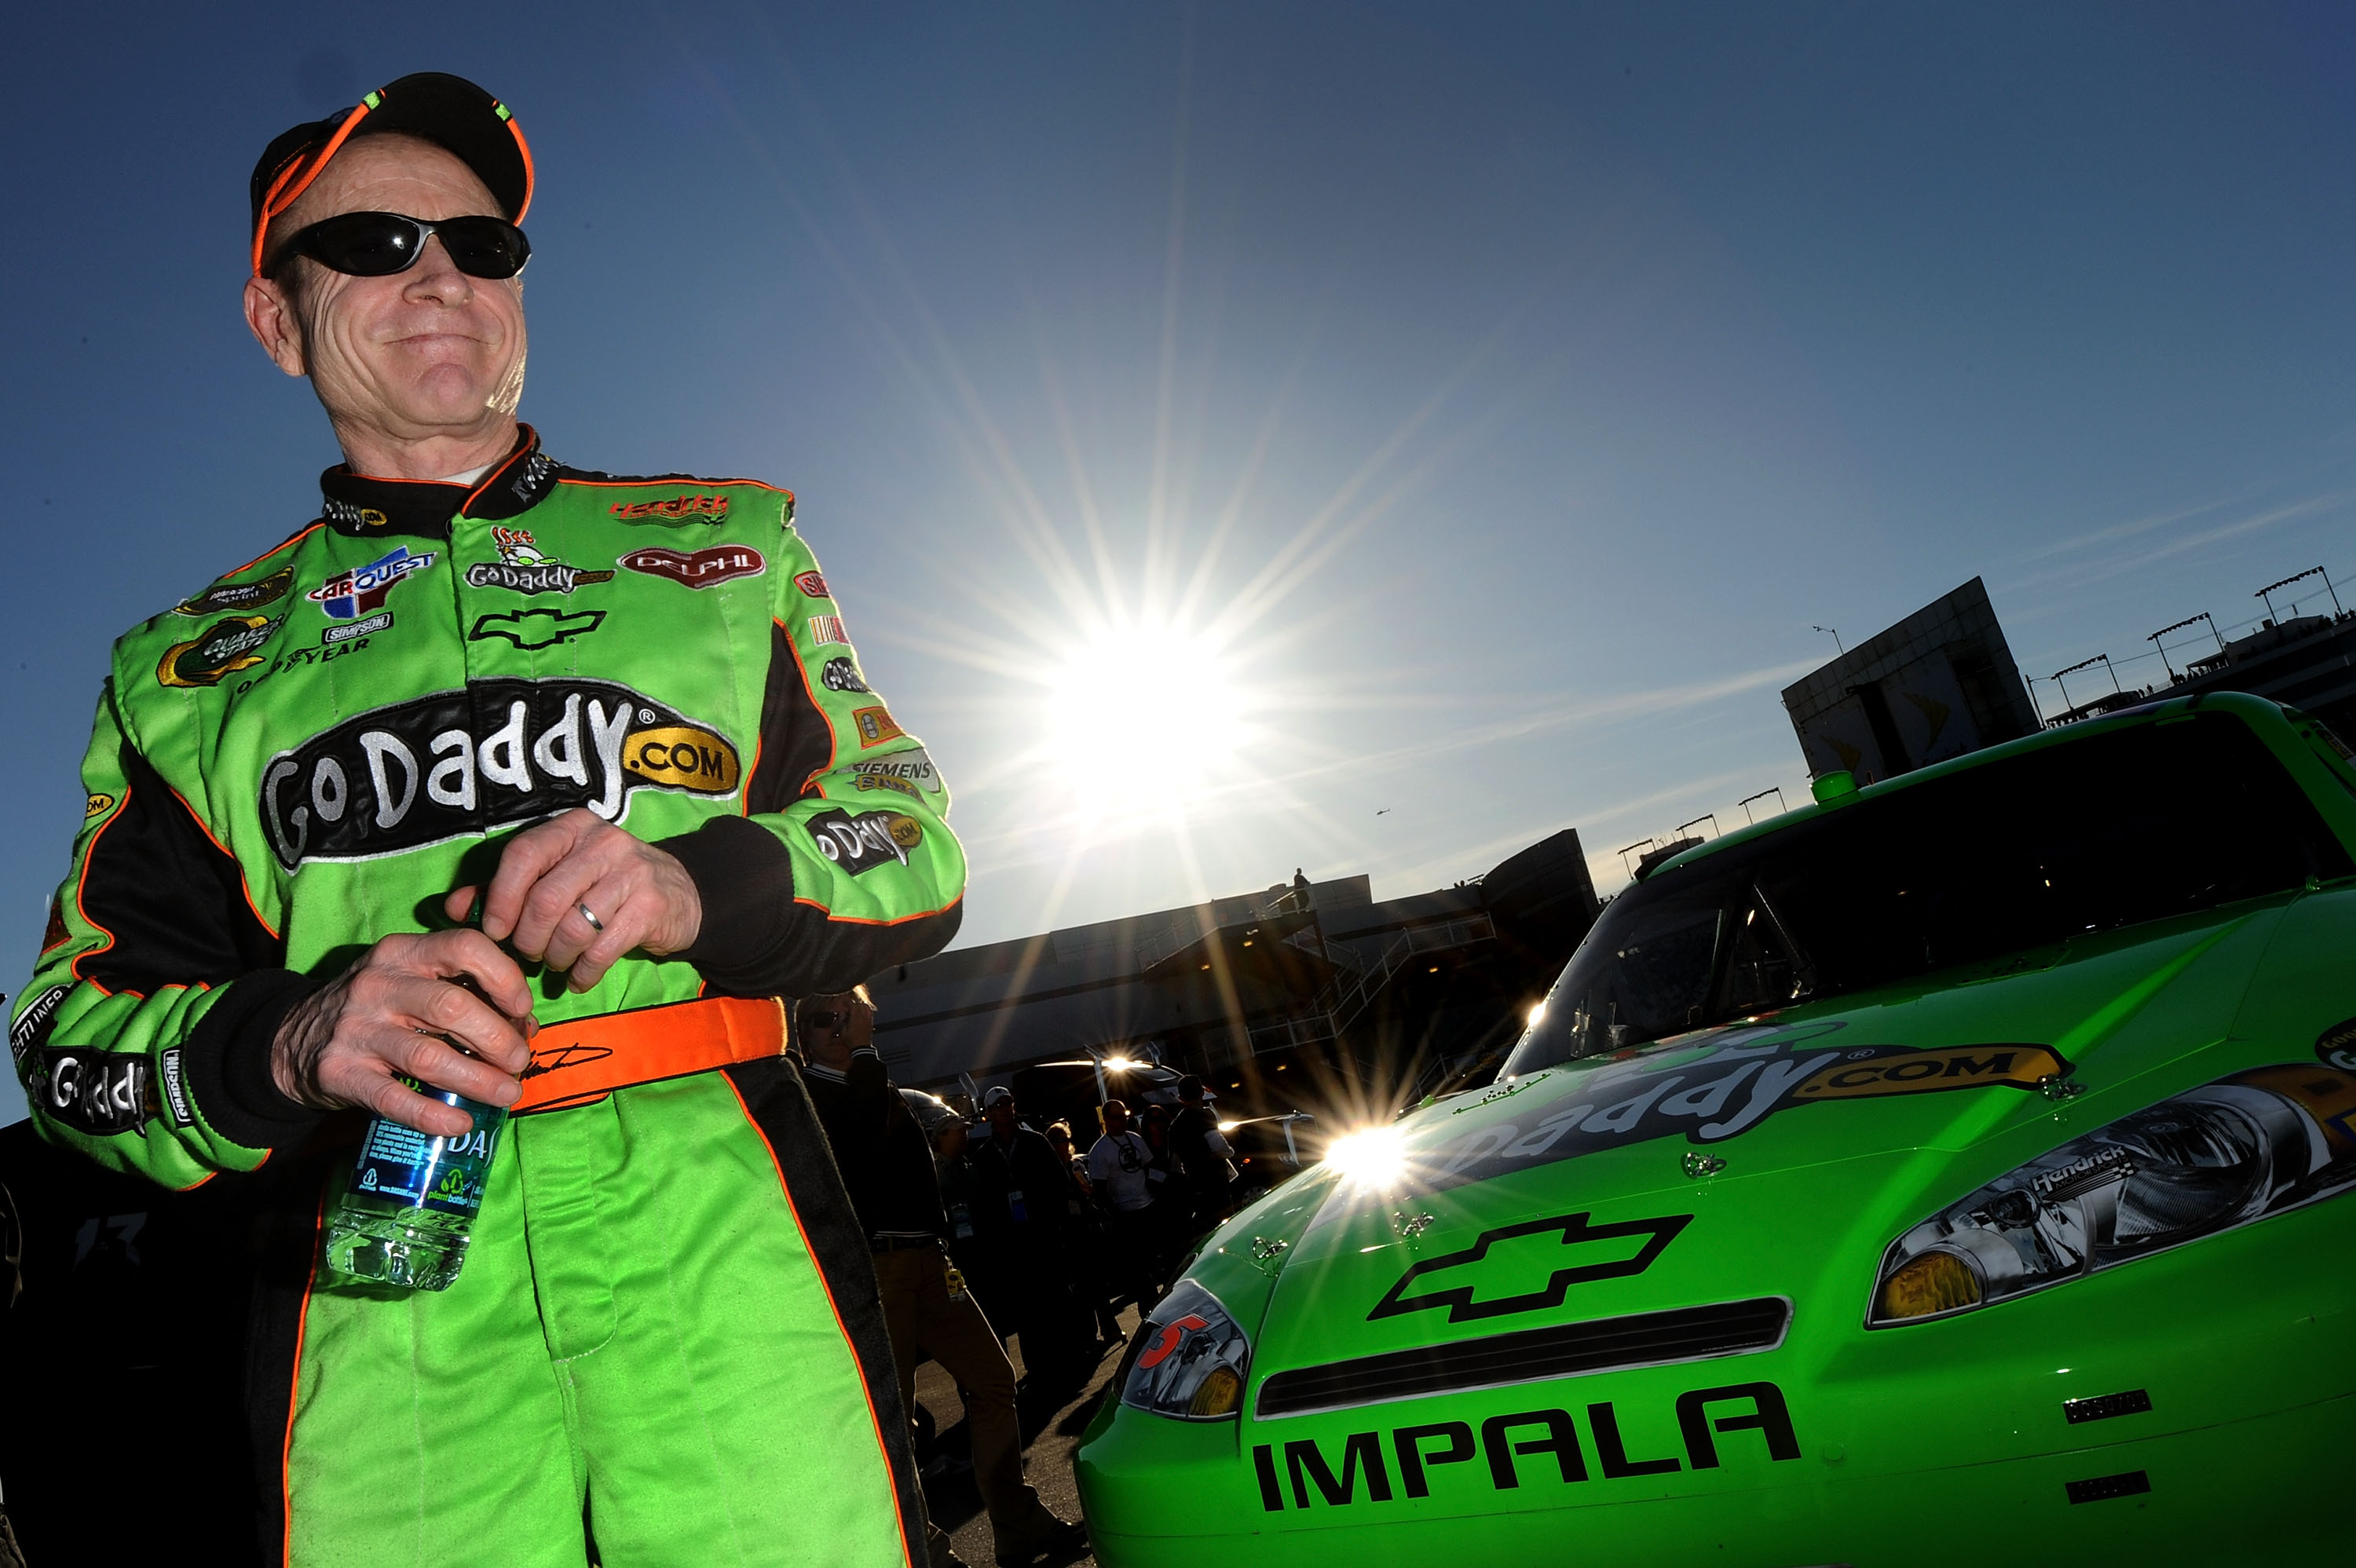 LAS VEGAS, NV - MARCH 04:  Mark Martin, driver of the #5 GoDaddy.com Chevrolet, stands in the garage area after qualifying for the NASCAR Sprint Cup Series Kobalt Tools 400 at Las Vegas Motor Speedway on March 4, 2011 in Las Vegas, Nevada.  (Photo by Jare